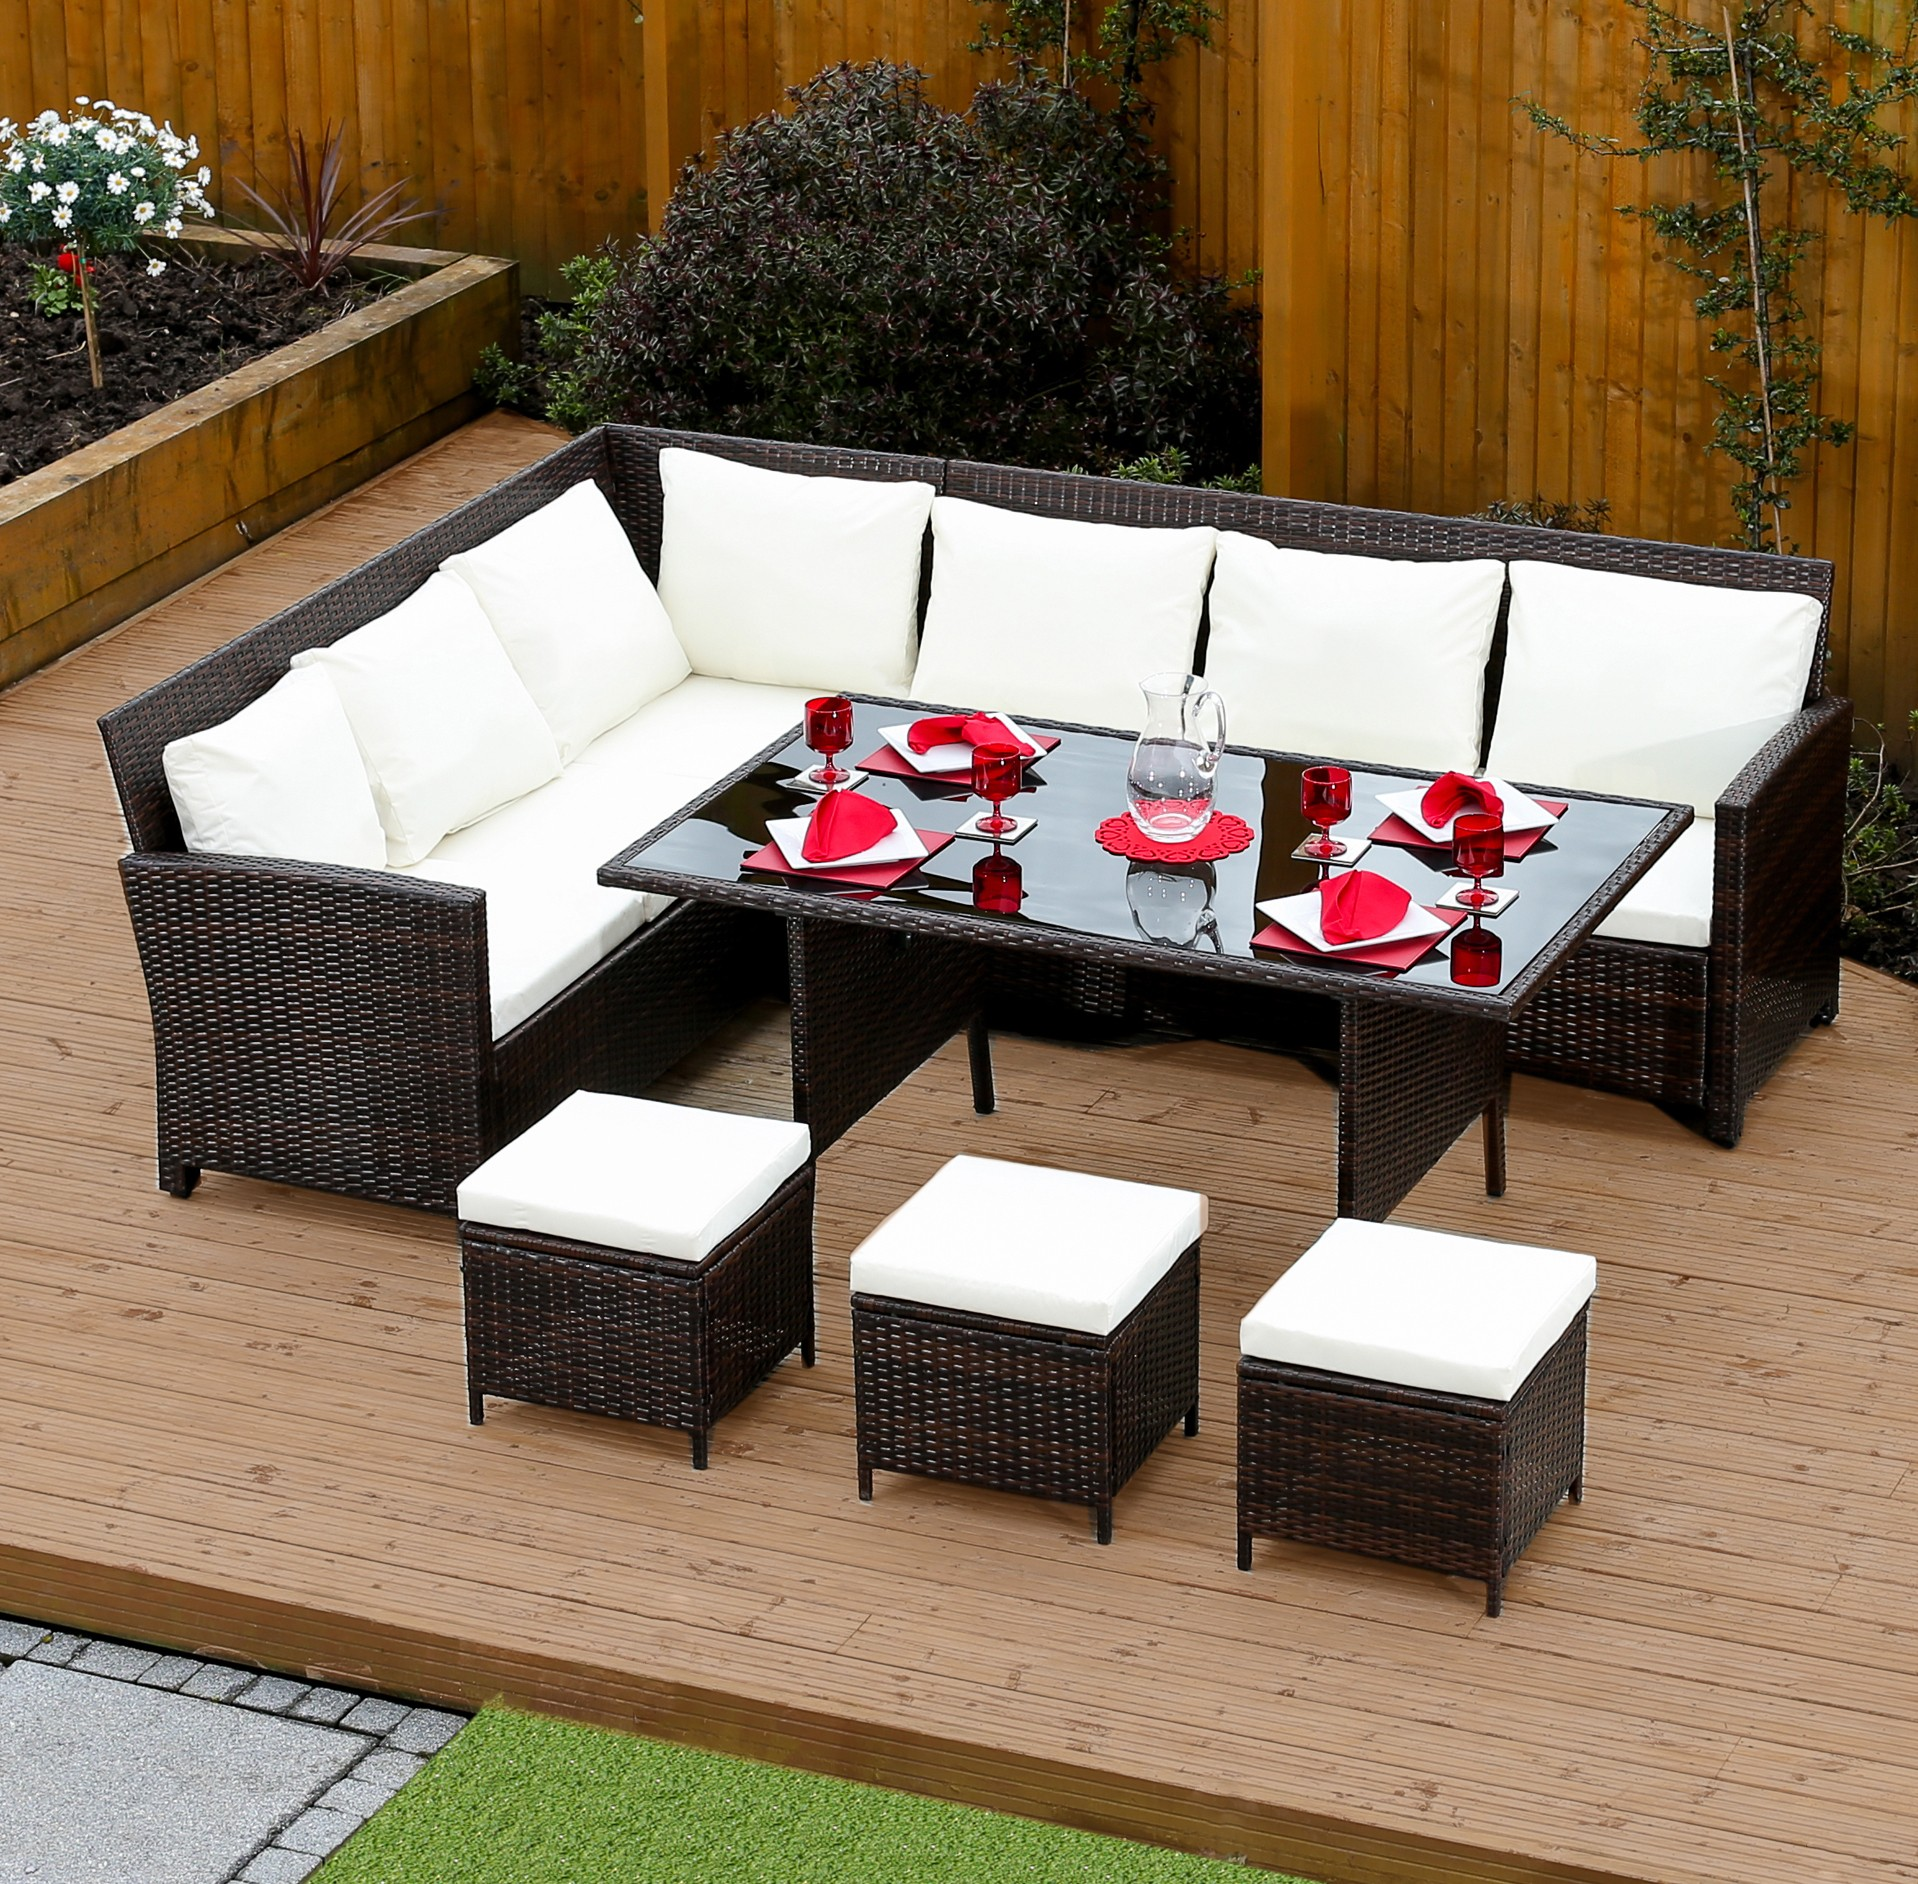 Florence 8 Piece Rattan Sofa Set With Cushions Brown 9 Seat Rattan Corner Dining Set From Abreo Abreo